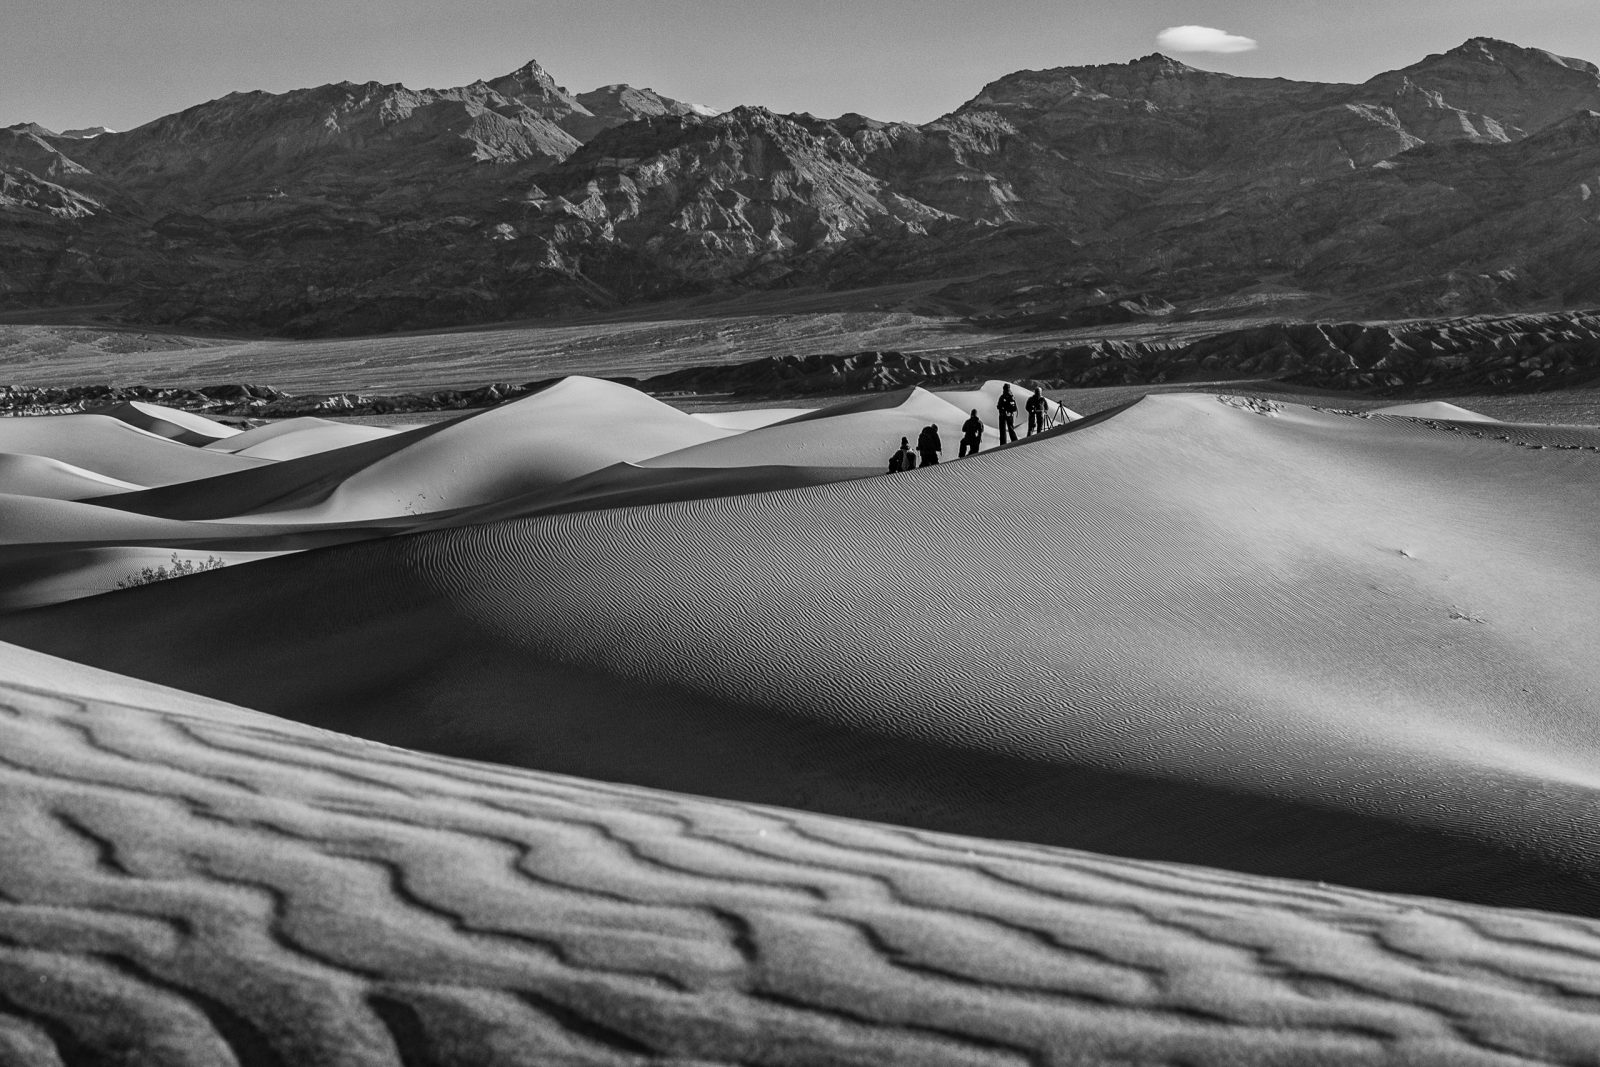 In The Dunes (Black and White)